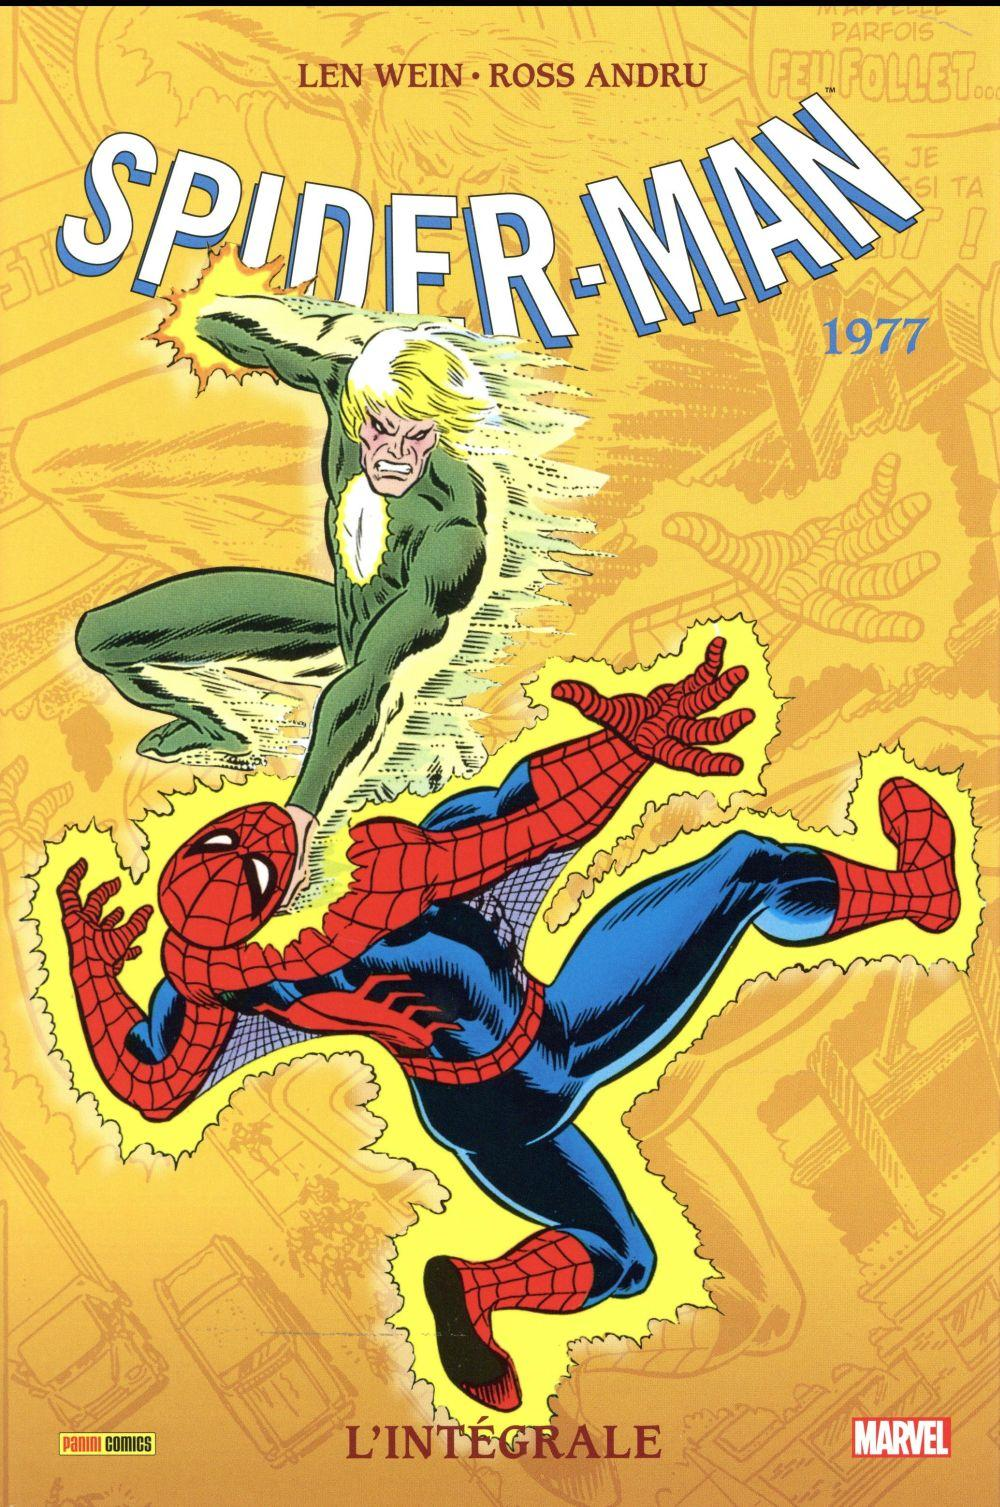 The amazing Spider-Man ; INTEGRALE VOL.15 ; 1977  - Len Wein  - Marv Wolfman  - Sal Buscema  - Ross Andru